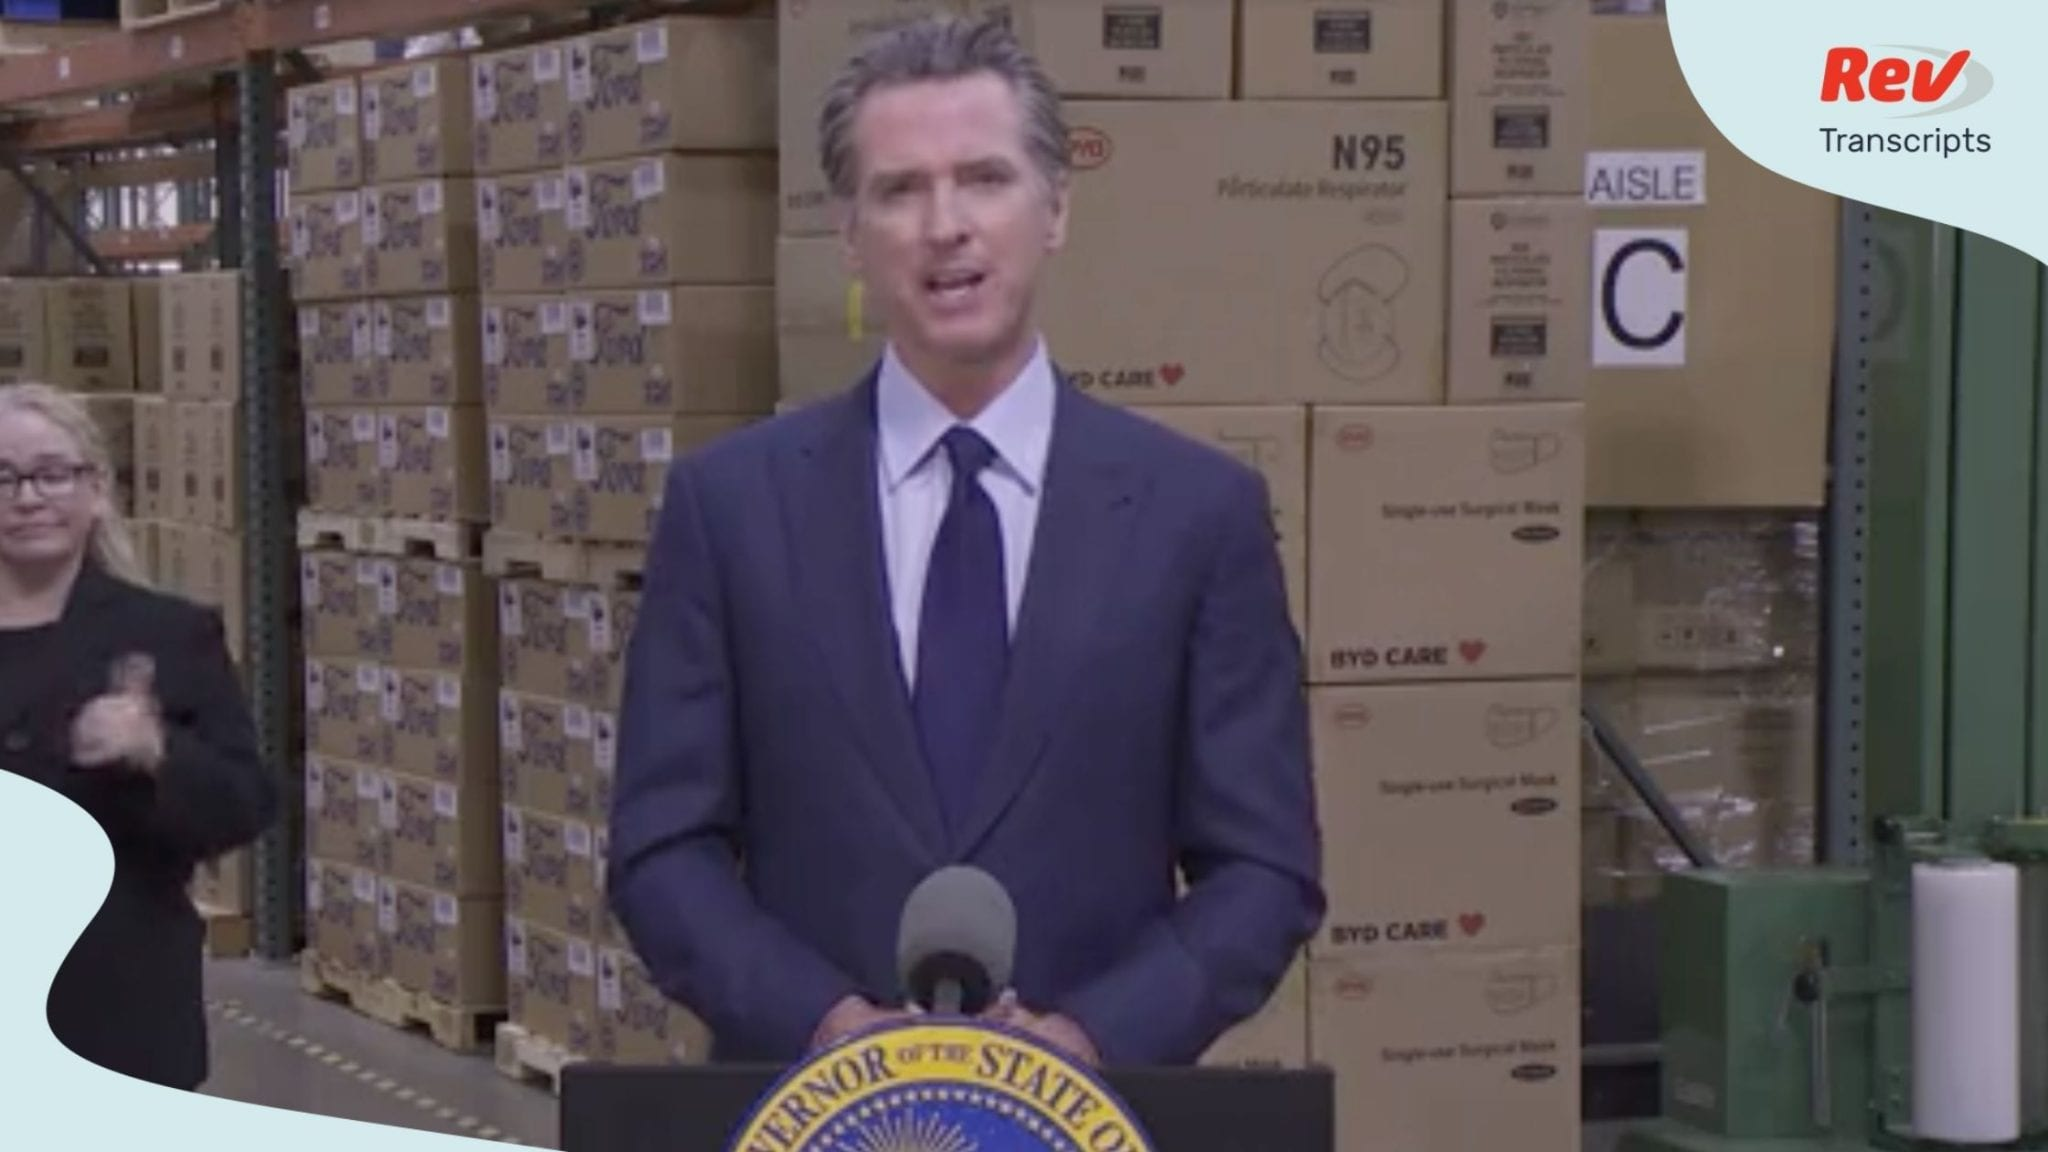 Governor Newsom gave a press conference on July 22